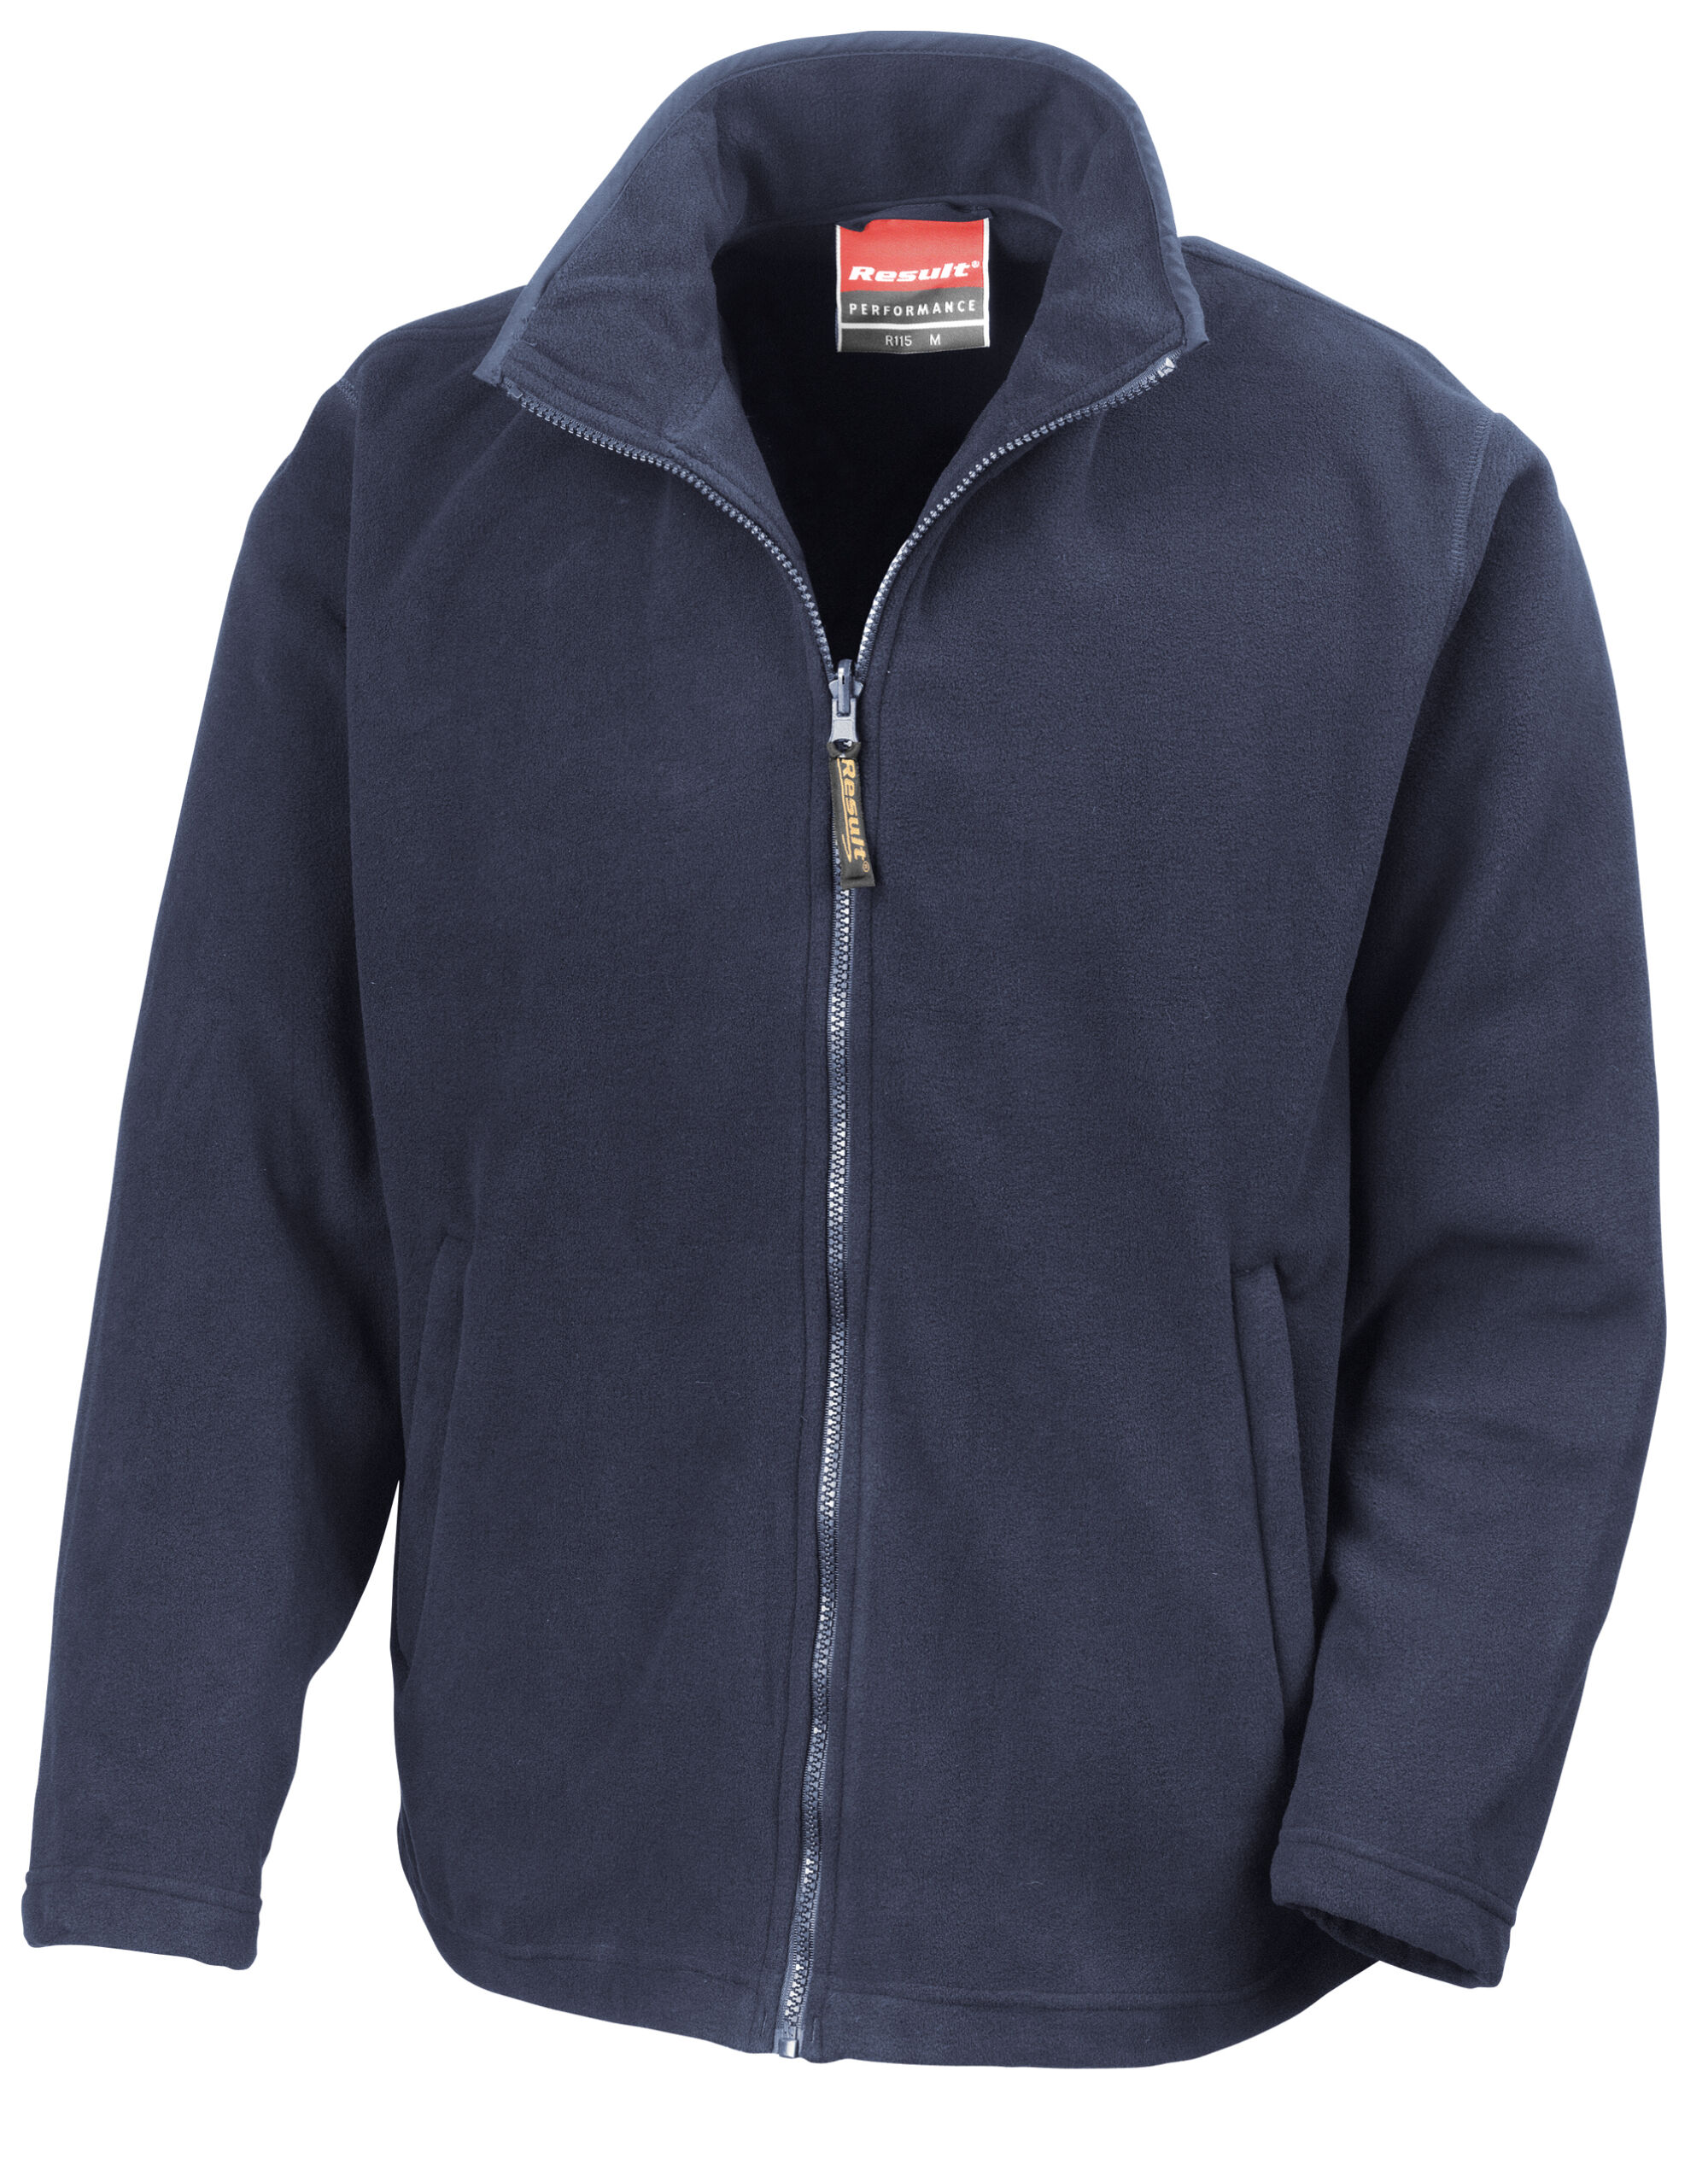 Micro Fleece Horizon Jacket